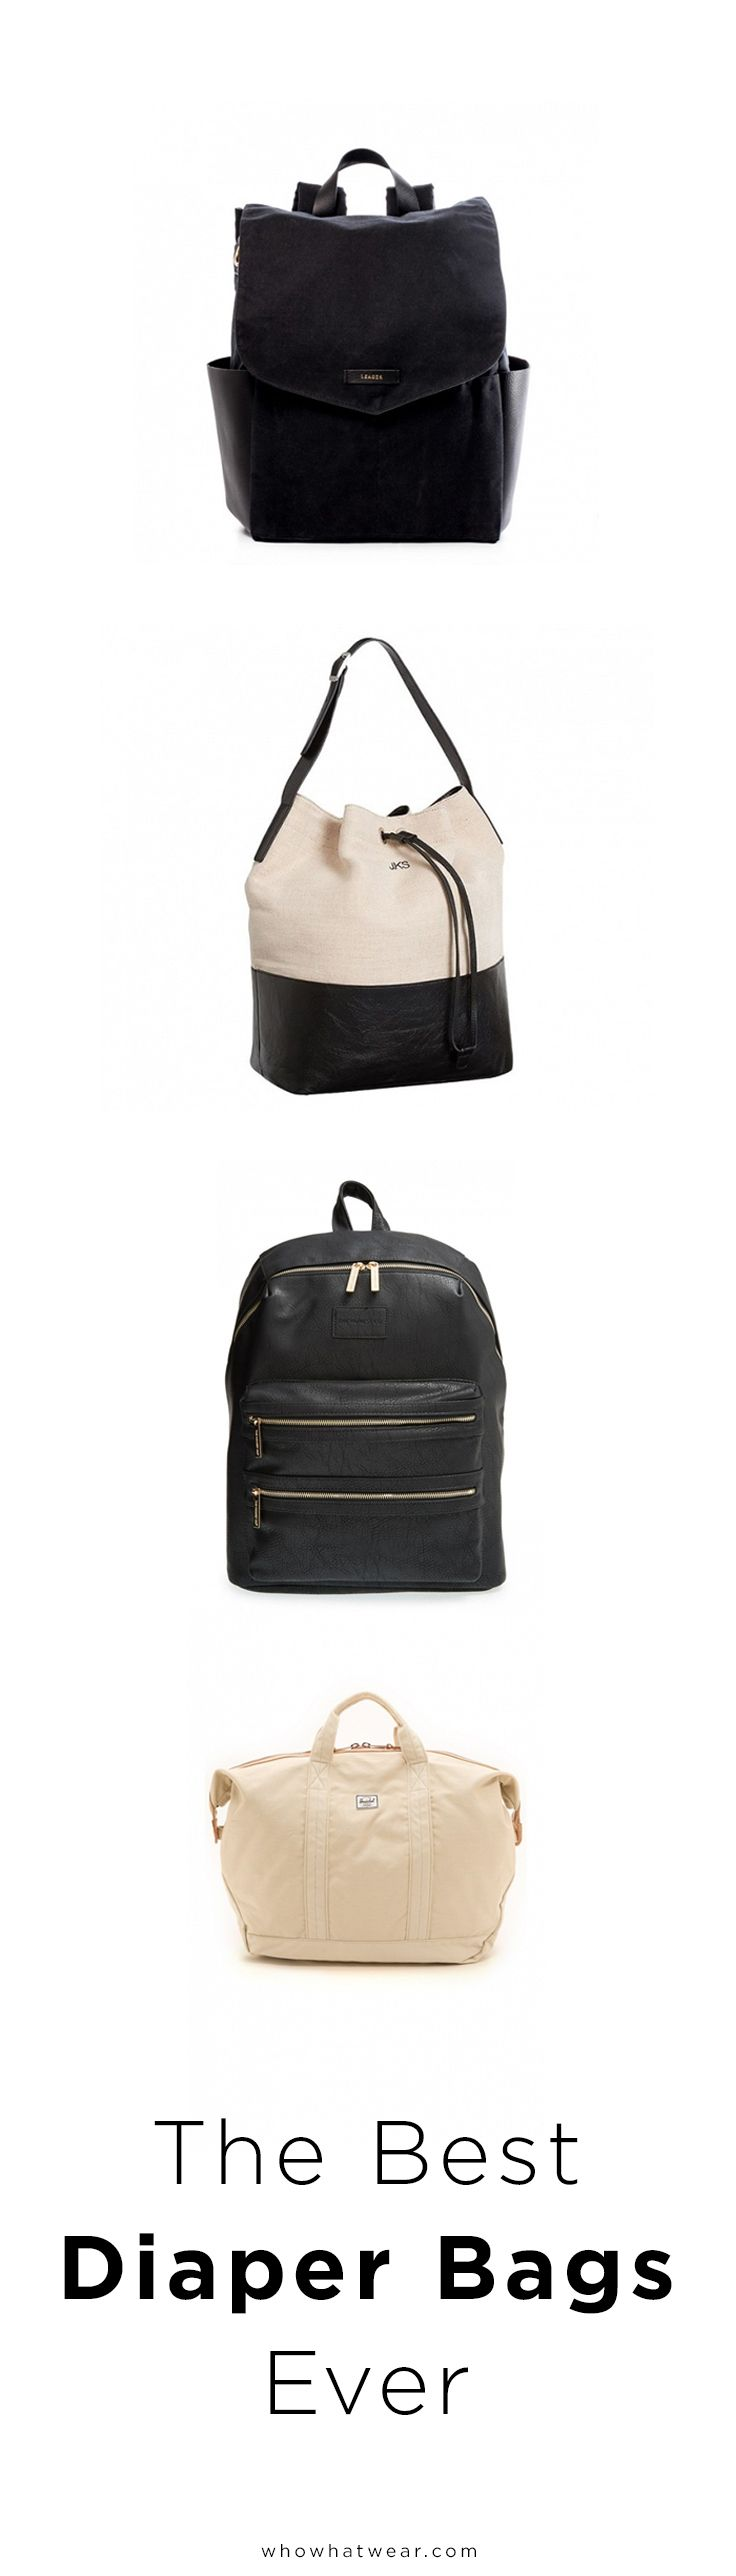 I hate the typical diaper bag - would much rather have a classic leather backpack style...